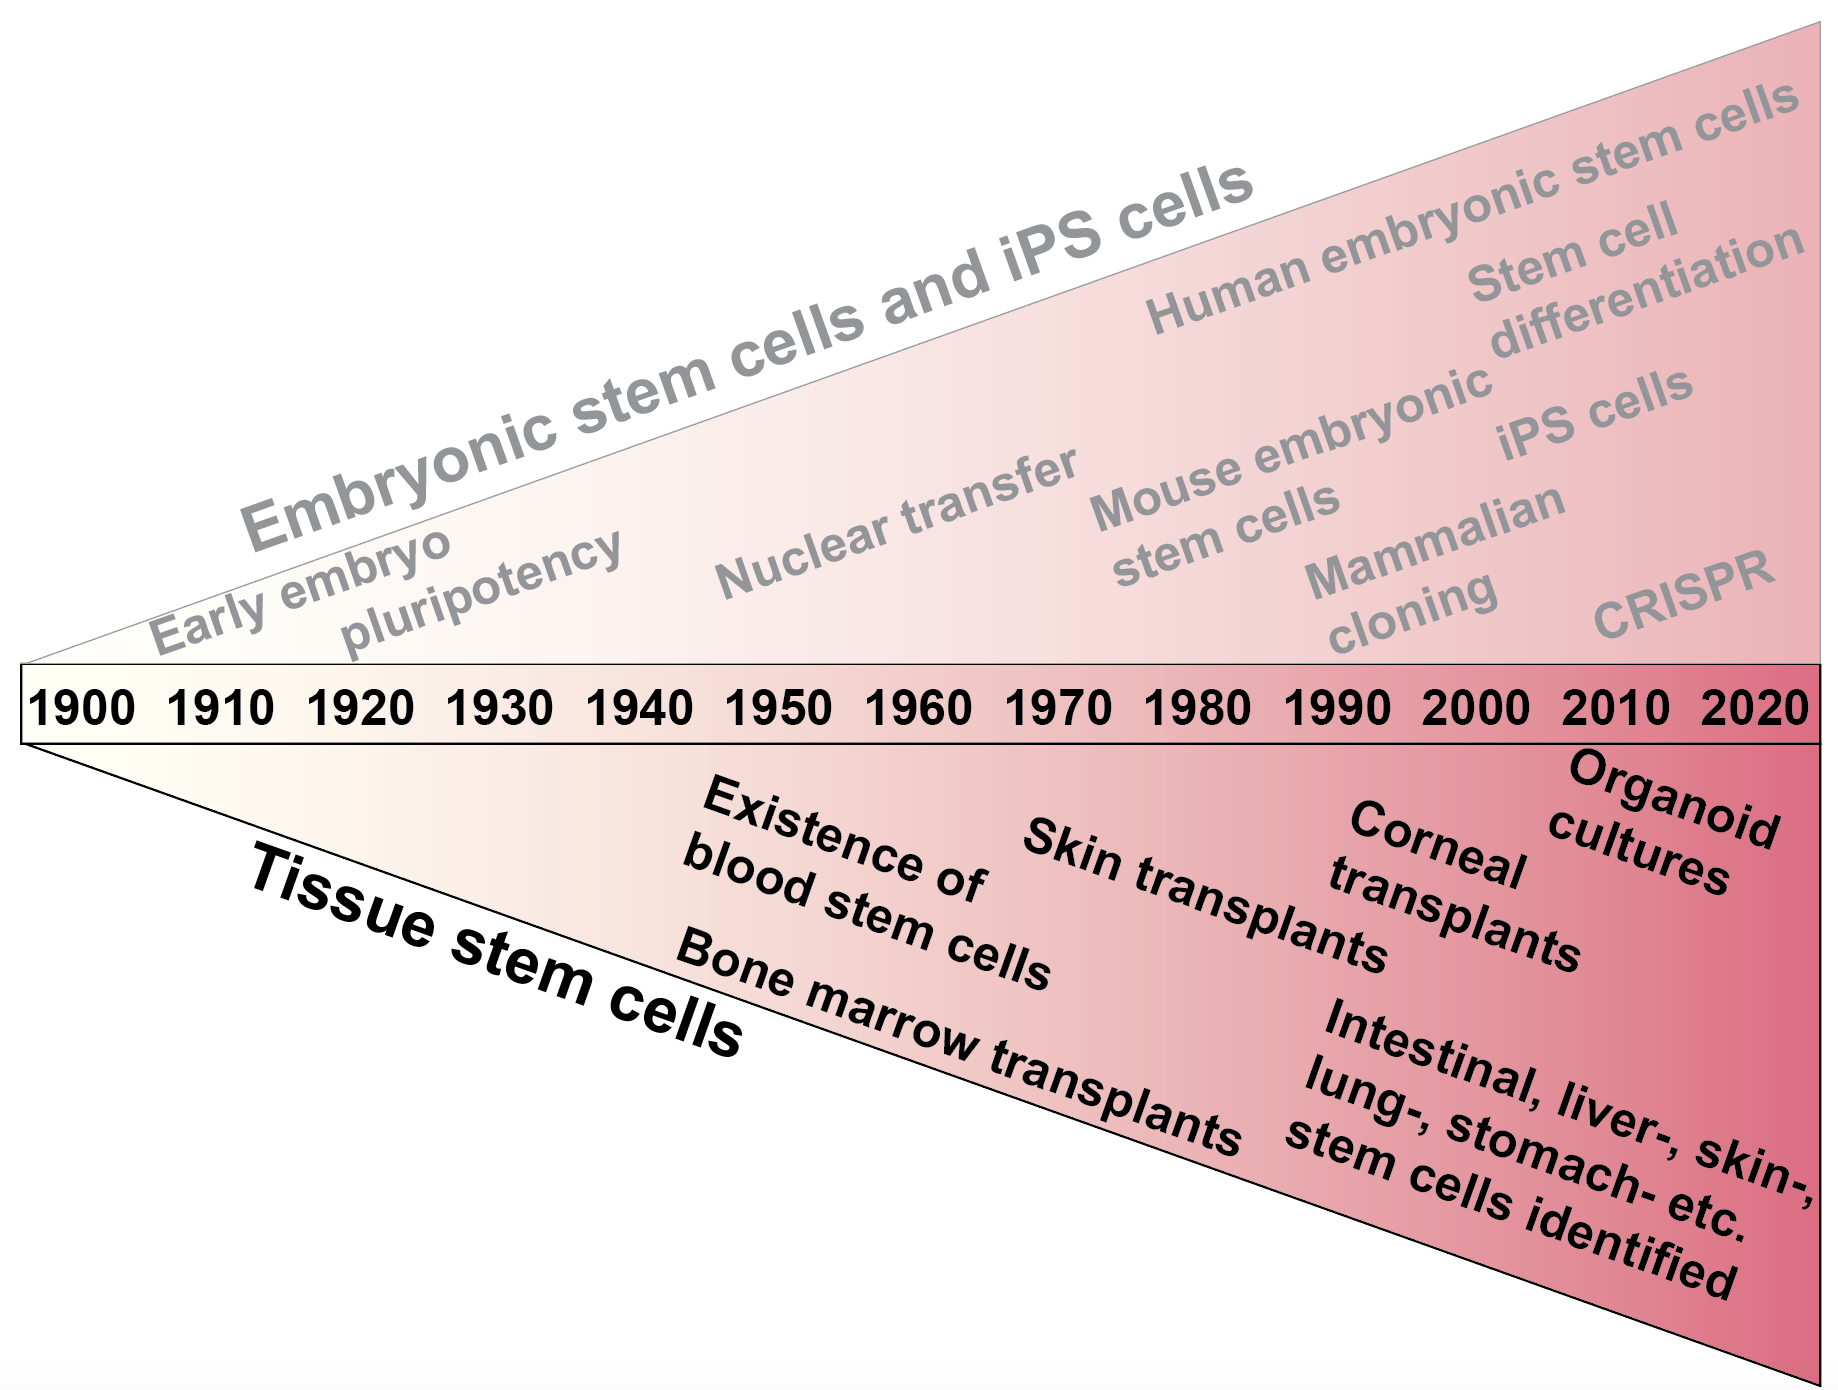 The history of stem cell research, Image: Emilia Kuuluvainen